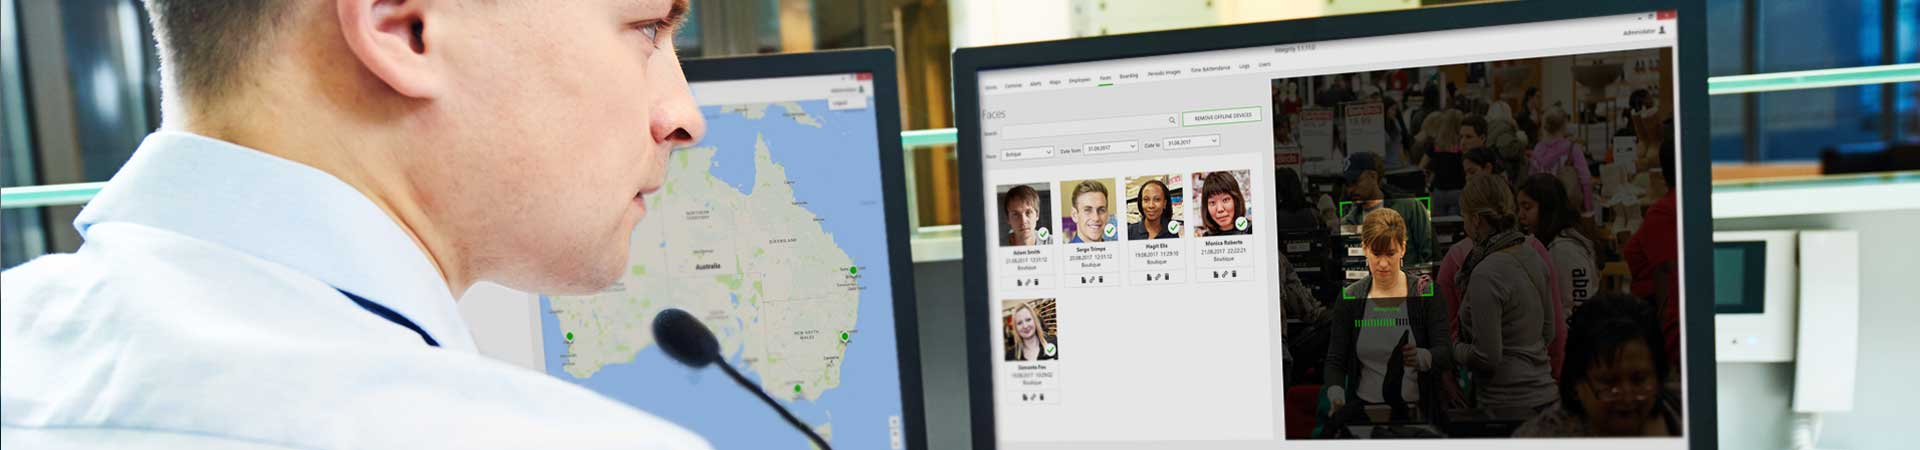 Development of Facial Recognition Software for Employee Monitoring